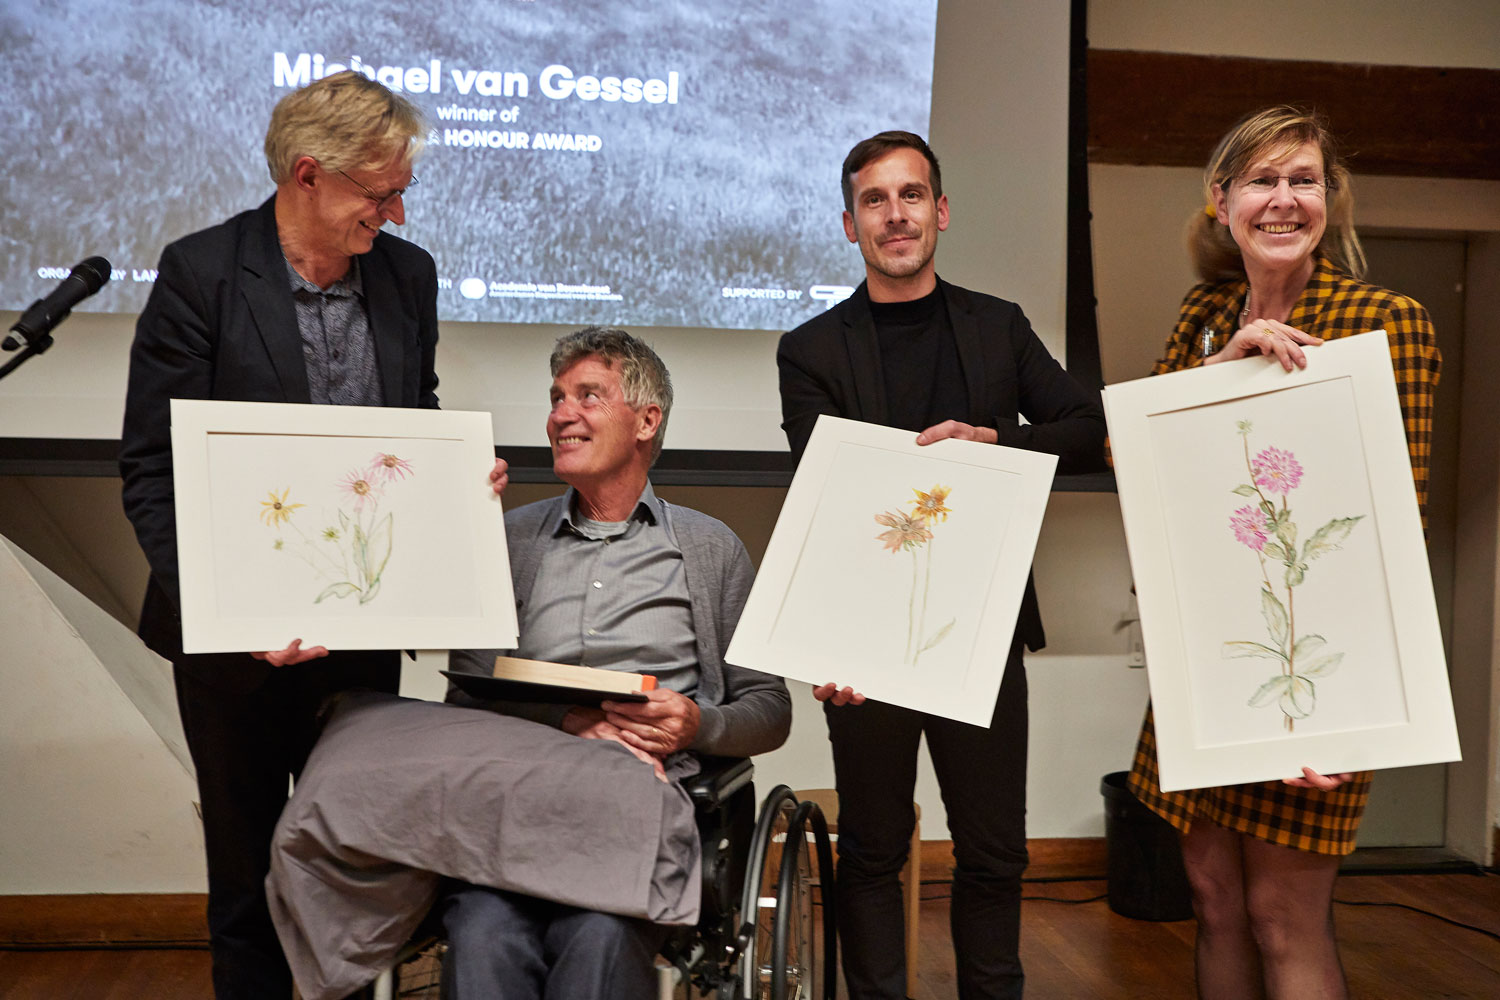 The 2019 LILA Honour Award ceremony took place at the Academy of Architecture in Amsterdam on Saturday, November 2nd, 2019. Editor-in-chief of Landezine, Zaš Brezar, presented the award statement and invited three experts to speak about the work of the award winner Michael van Gessel: Marc Treib, Lisa Diedrich and Frits Palmboom. After the presentation of the award, Van Gessel gave his recent paintings to the speakers present at the event.